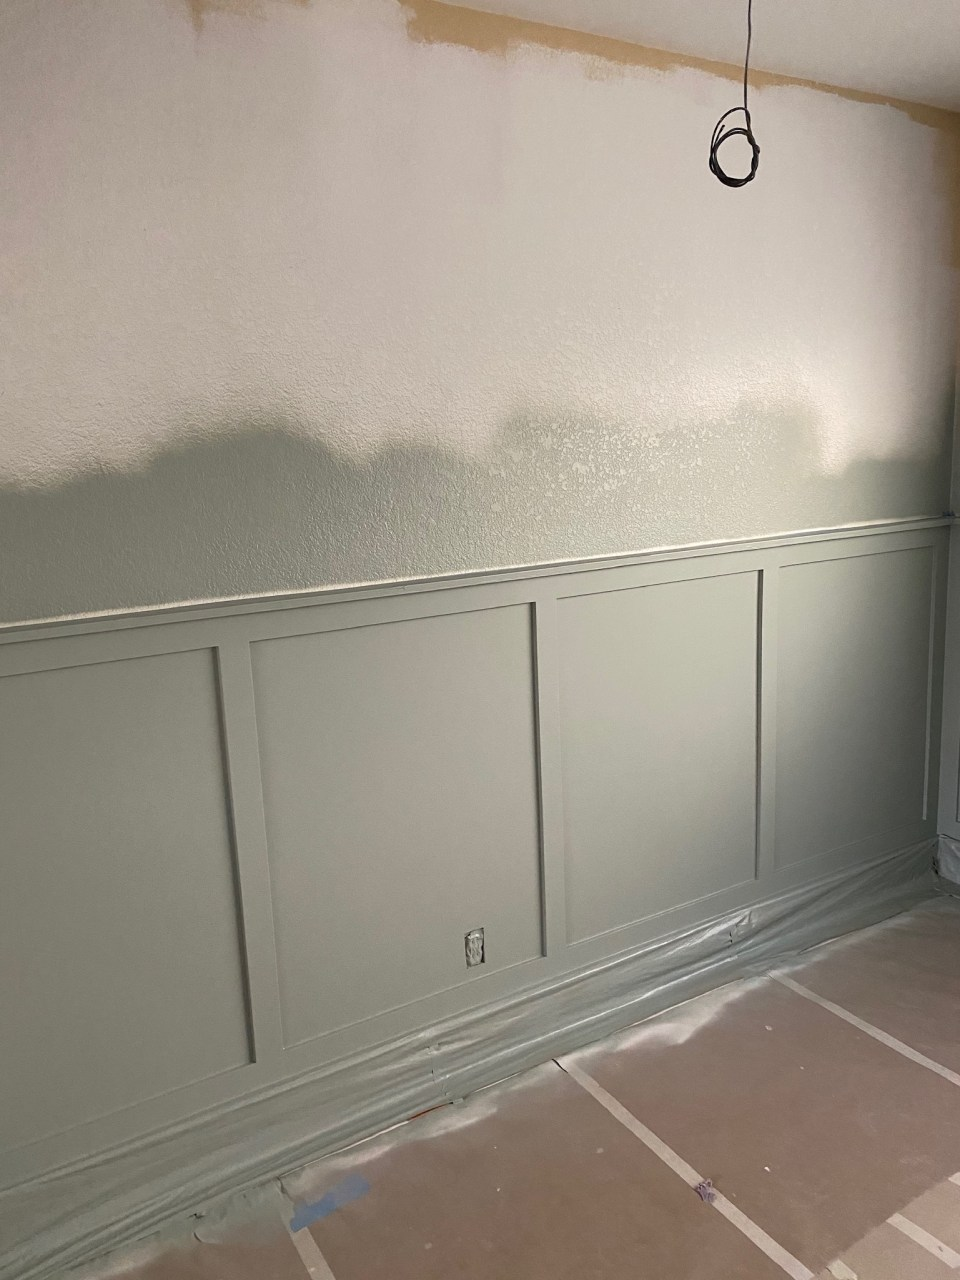 Painting the wainscotting SW Oyster Bay green